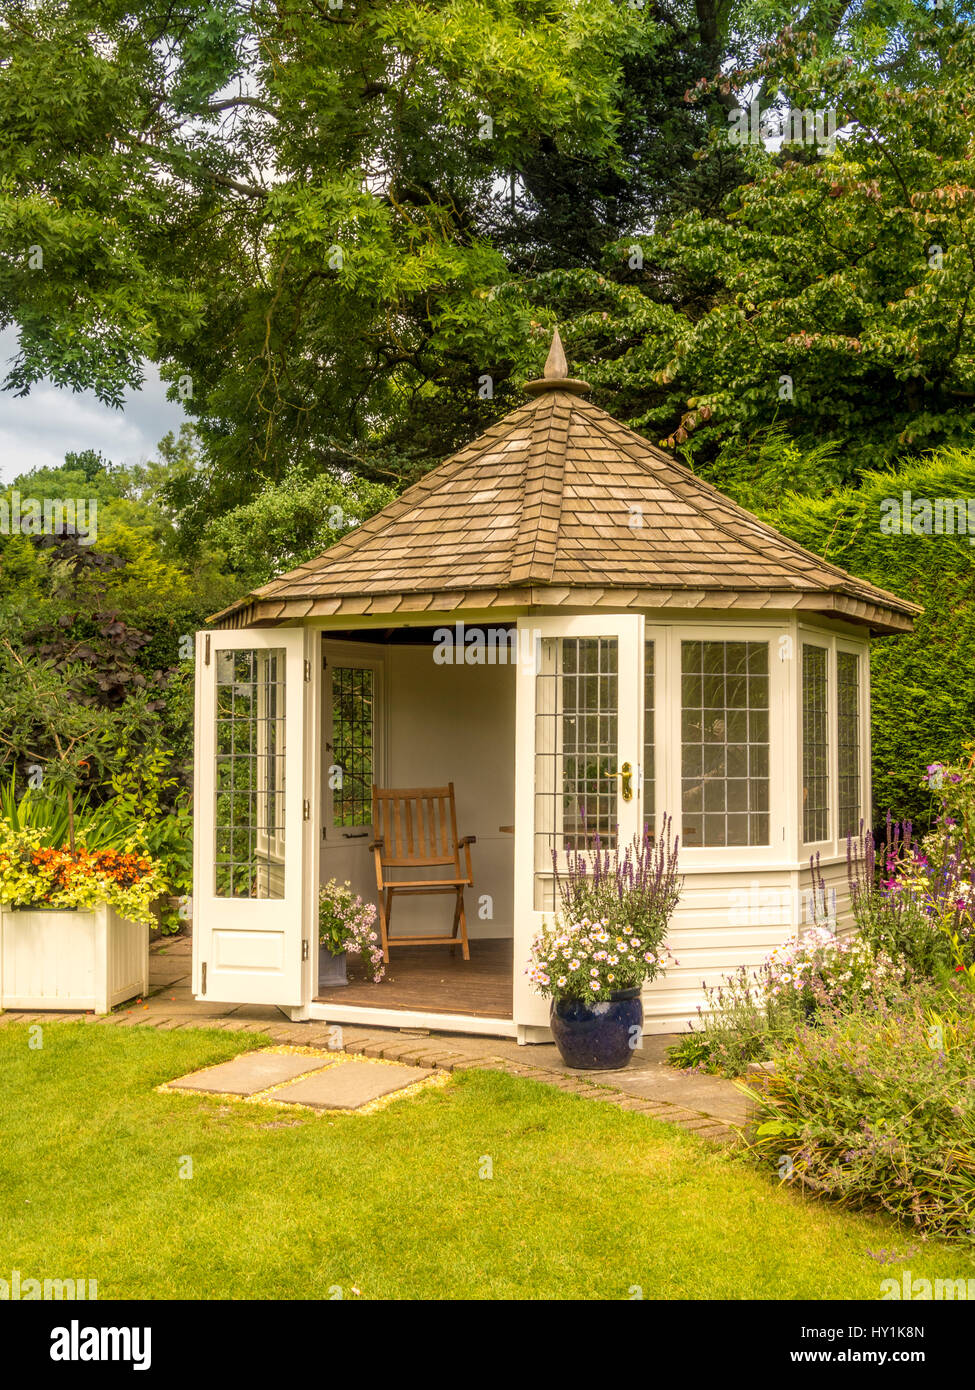 Garden summerhouse - Stock Image